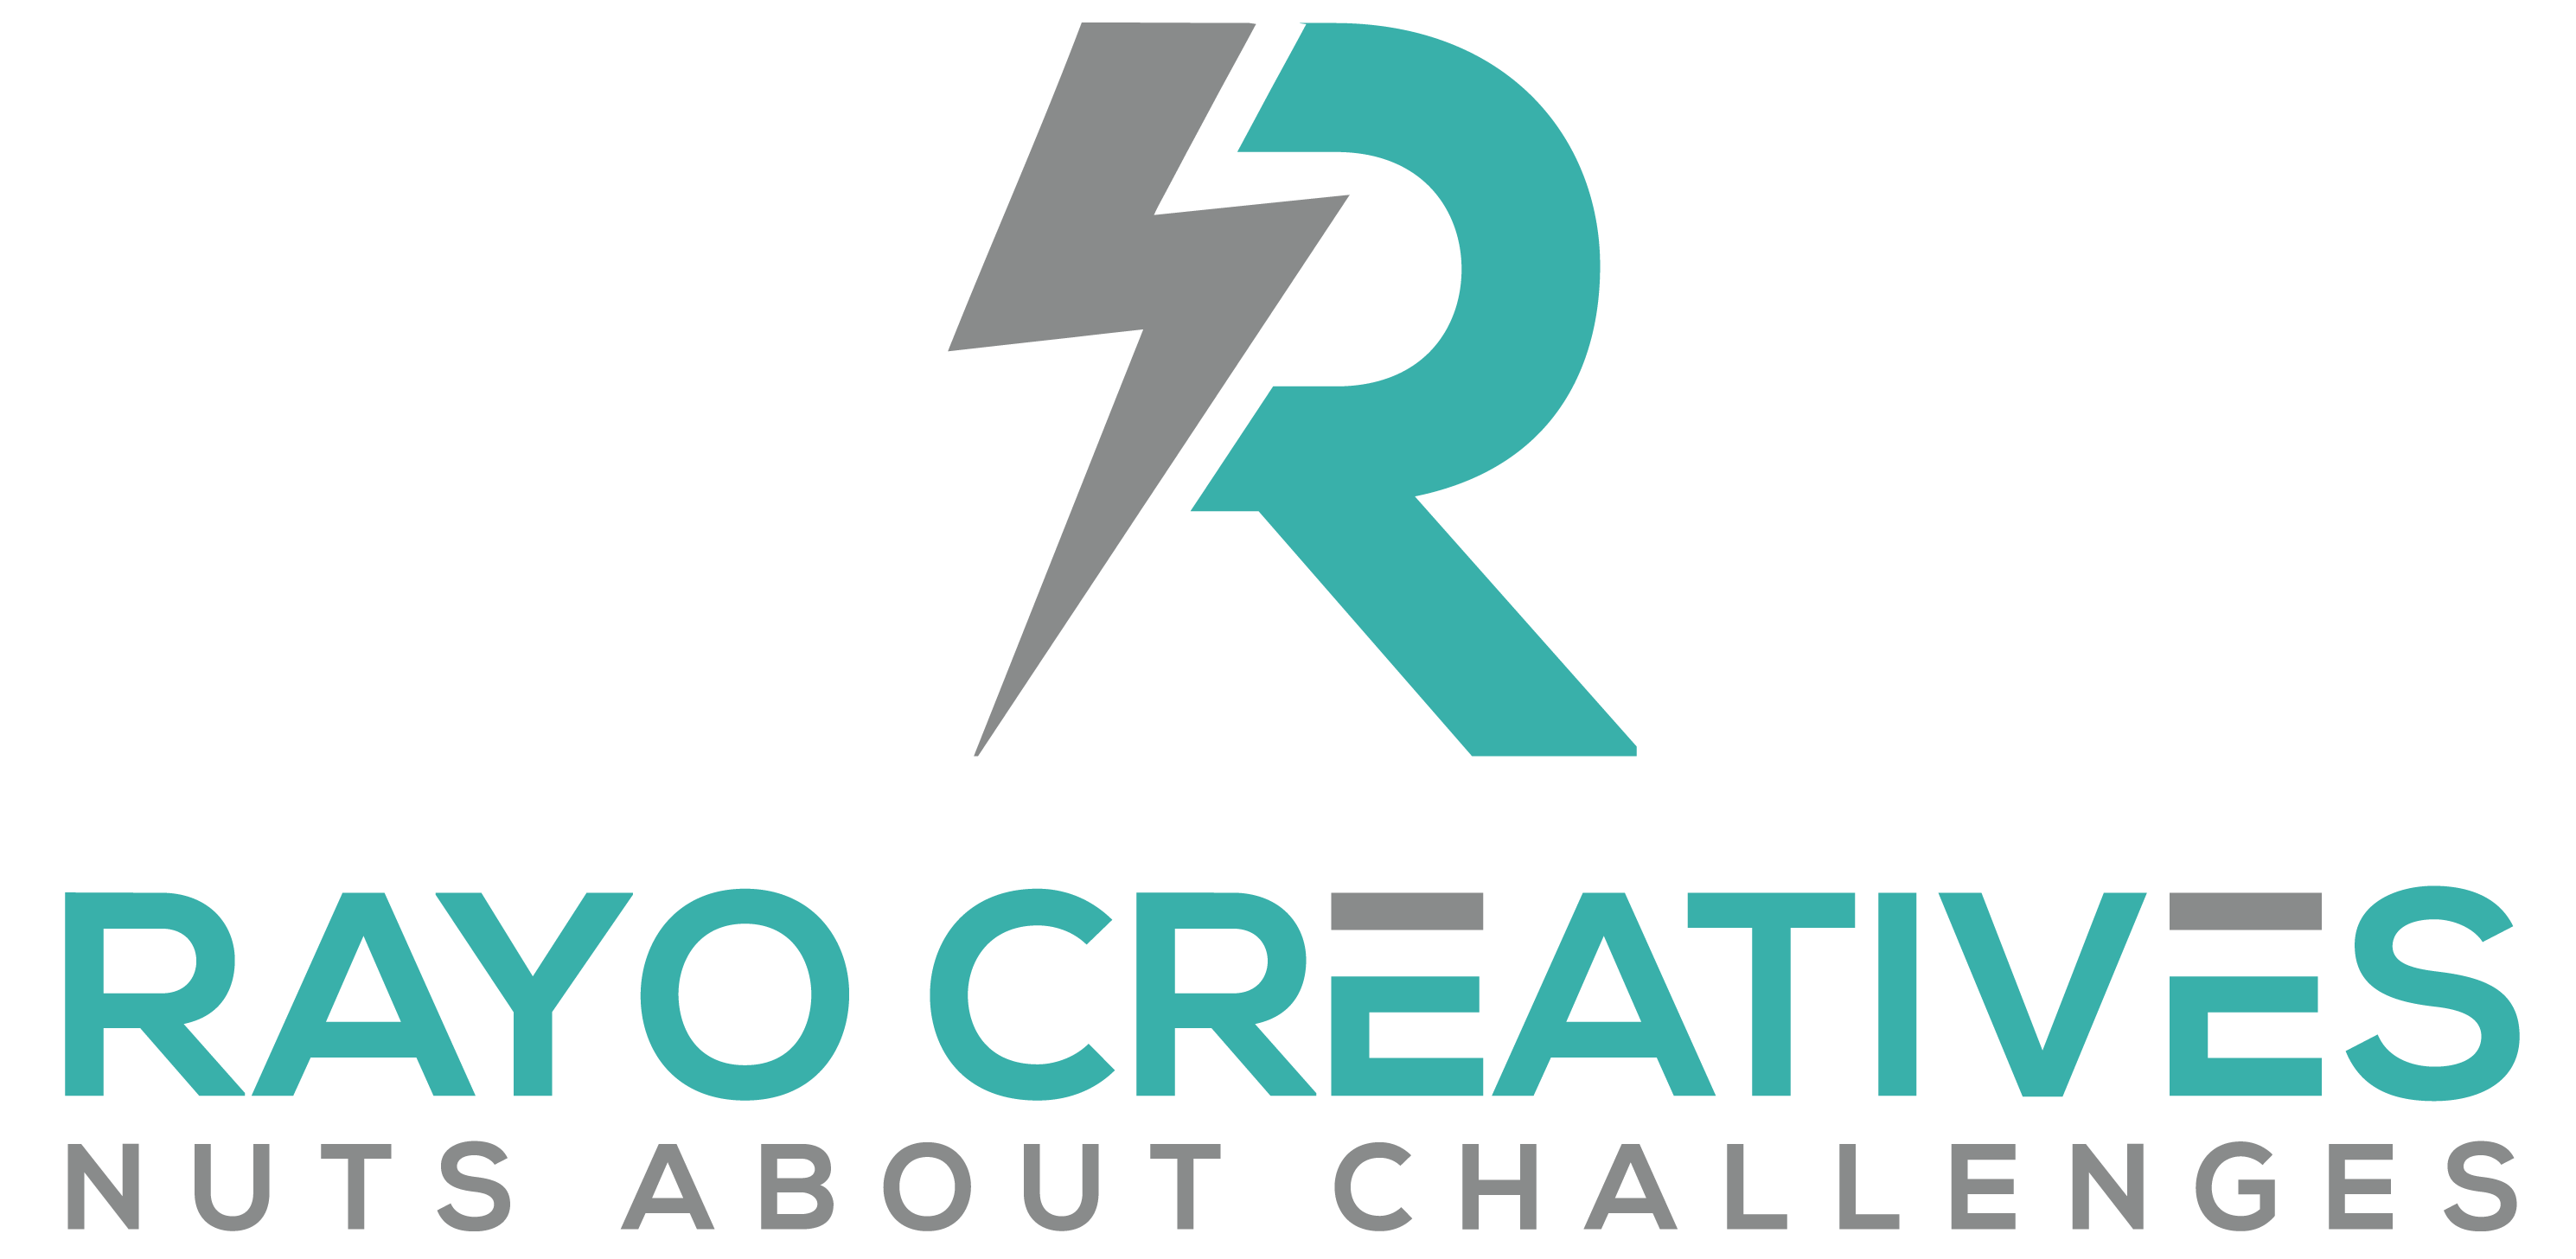 Rayo Creatives